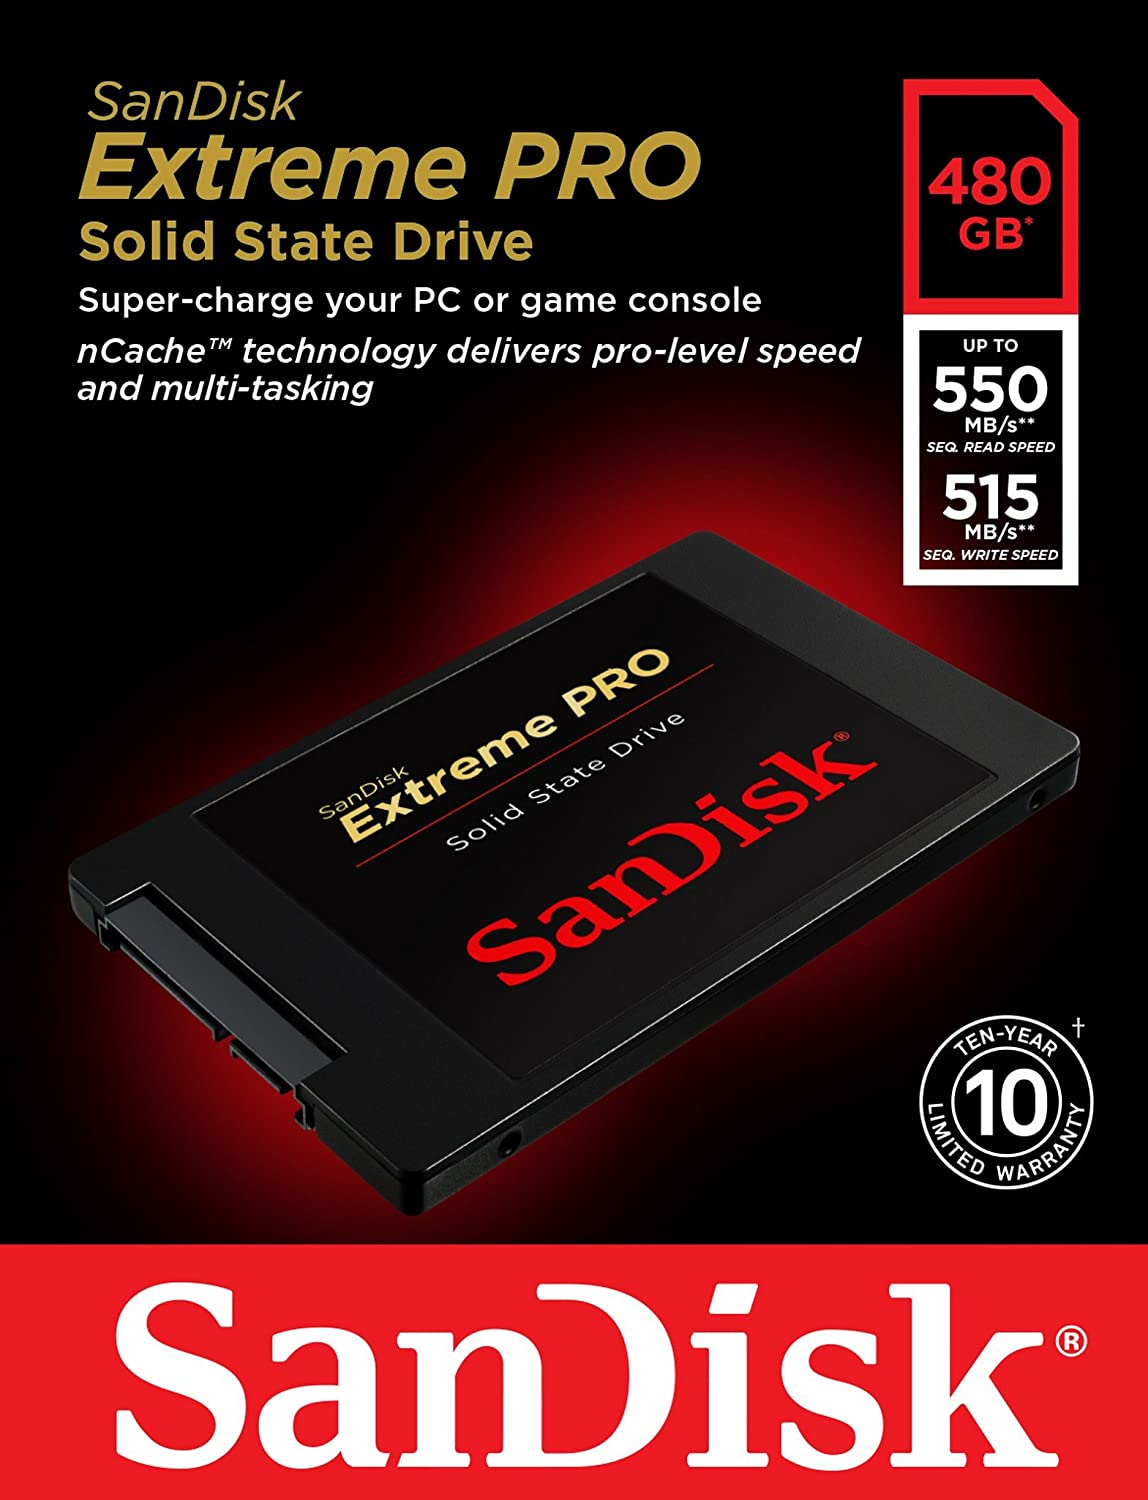 Buy sandisk 480gb extreme pro solid state drive features 480gb storage capacity, 550 mb/s sequential read speeds. Review sandisk internal drives, internal drives.